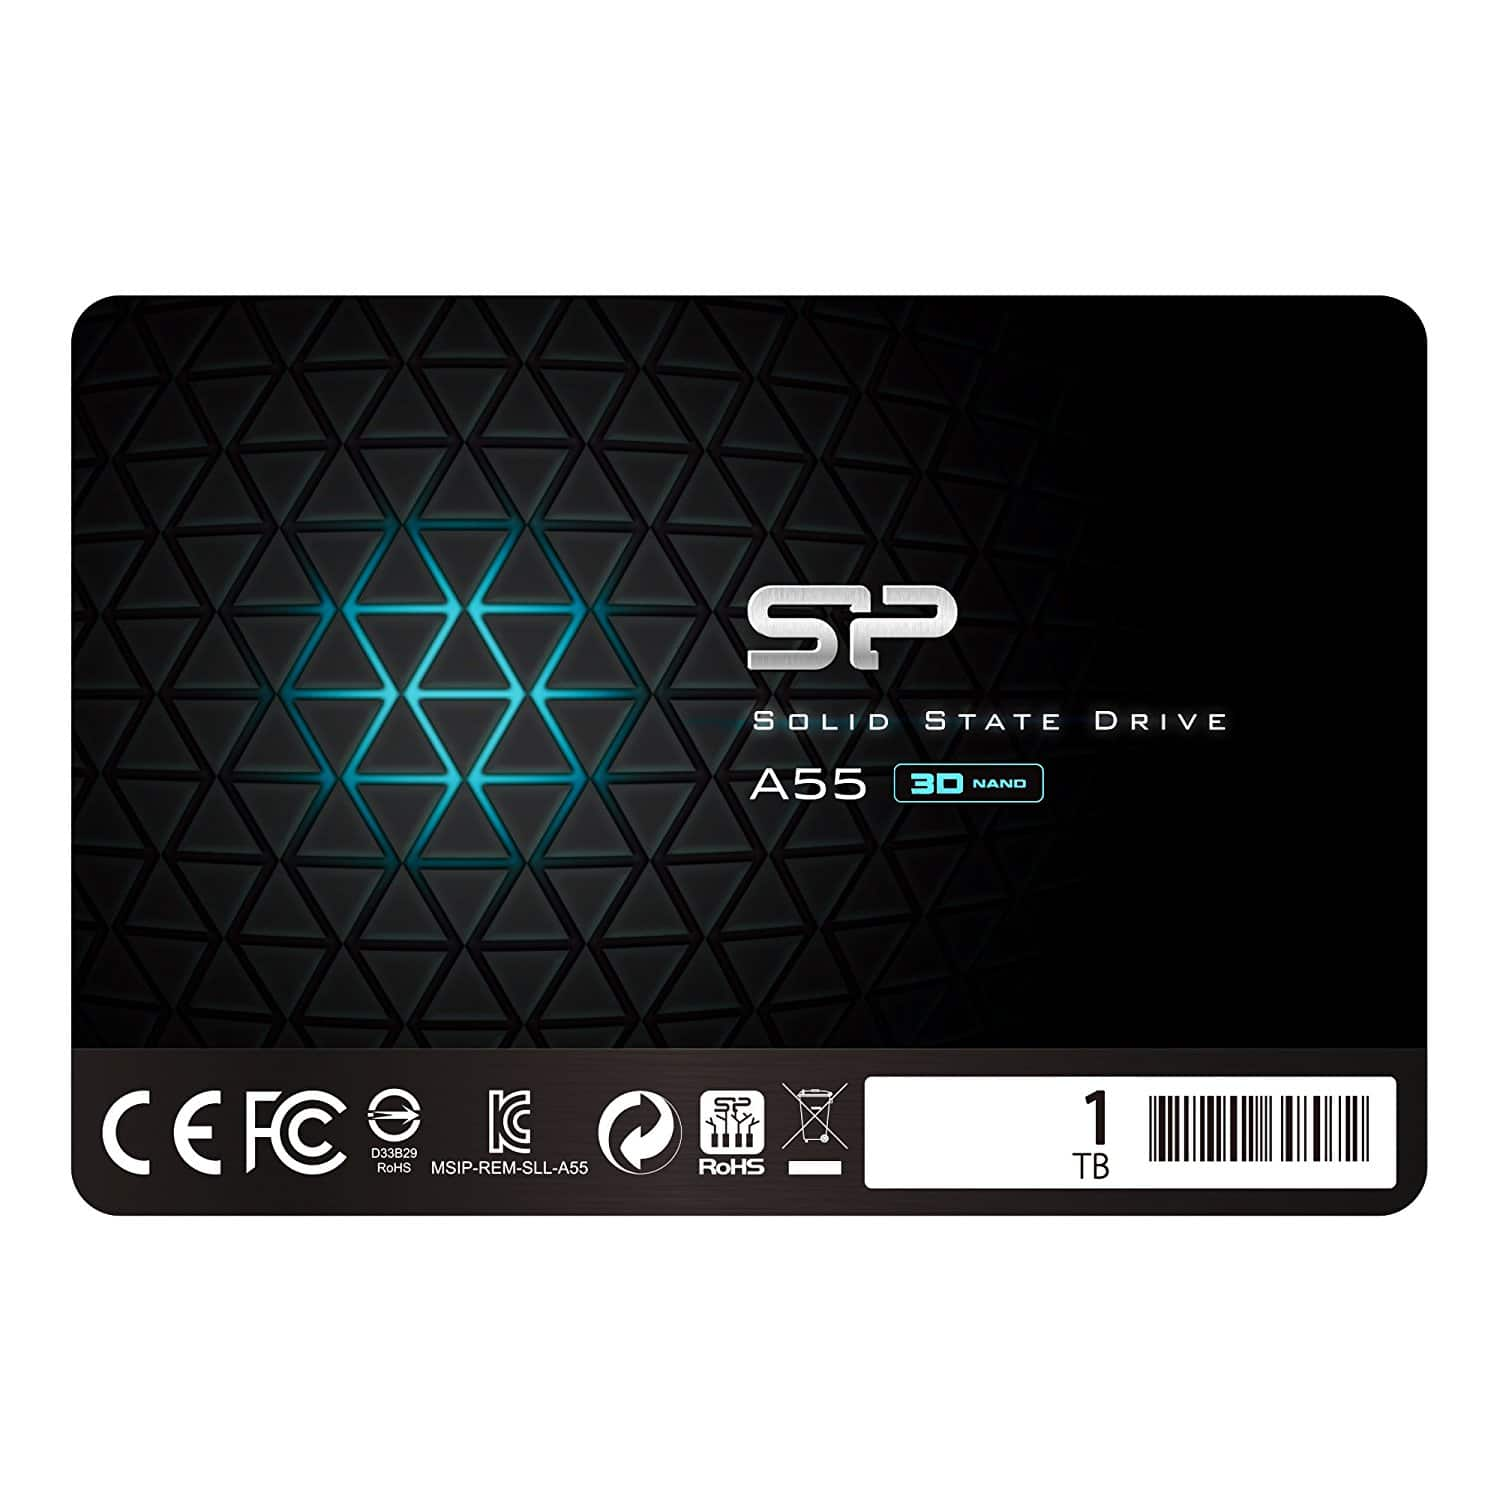 Silicon Power via Amazon.com has 1TB Silicon Power SSD 3D NAND A55 SLC Cache Performance Internal Solid State Drive on sale for U$184.99 + Free Shipping